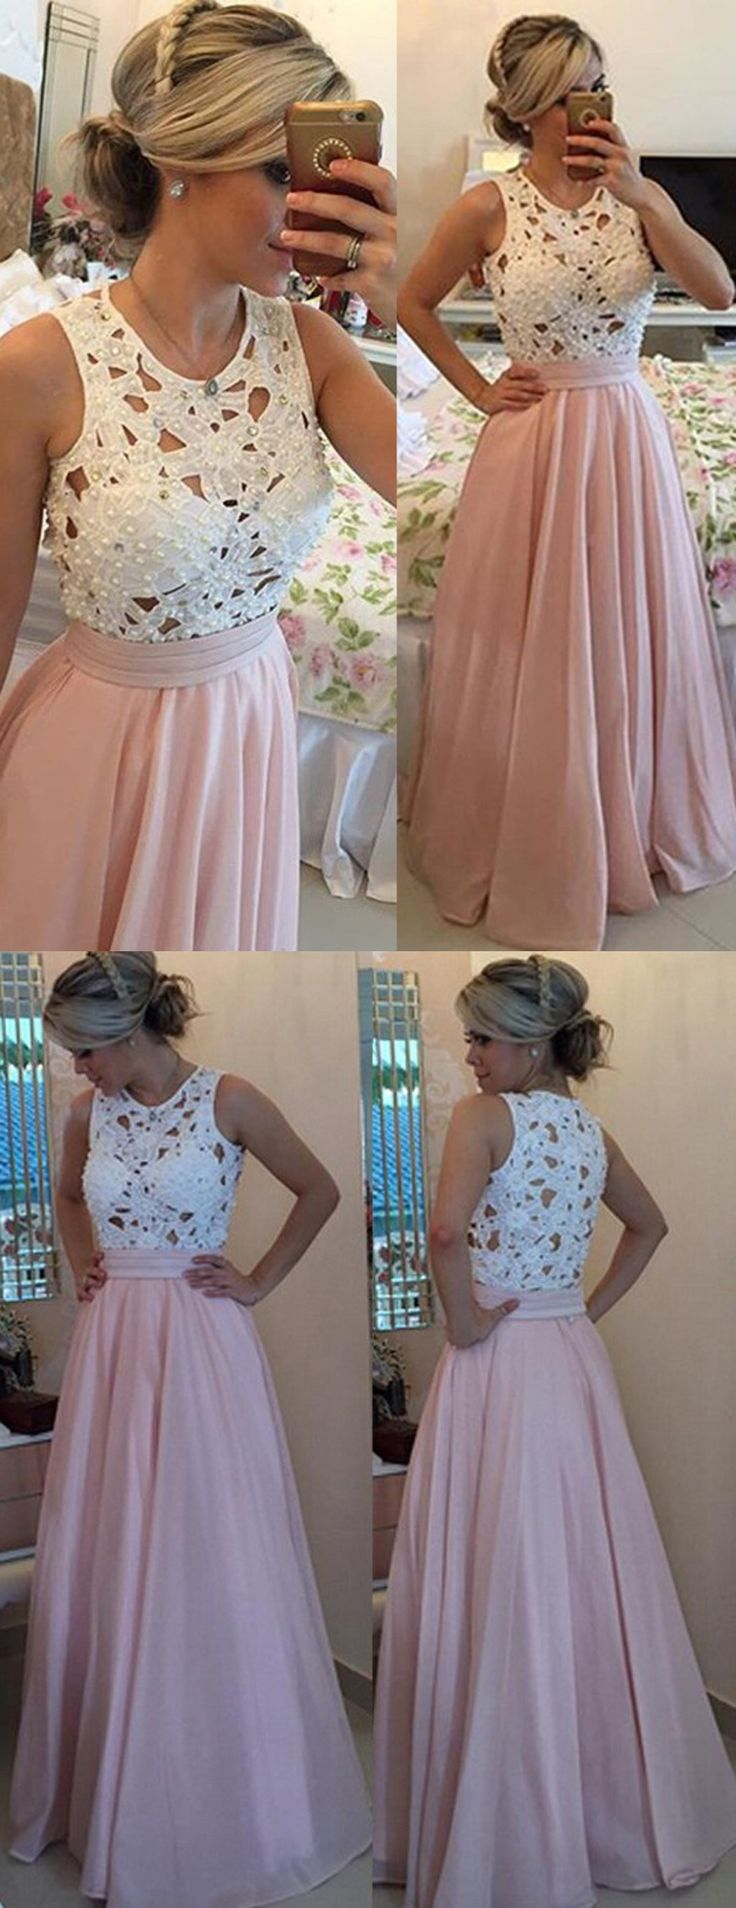 Long Prom Dresses with Pearls, 2017 Prom Dresses for women, Elegant prom dresses, High quality prom dresses,coral prom dresses,cheap prom dresses, new arrival prom dresses, white lace prom dresses